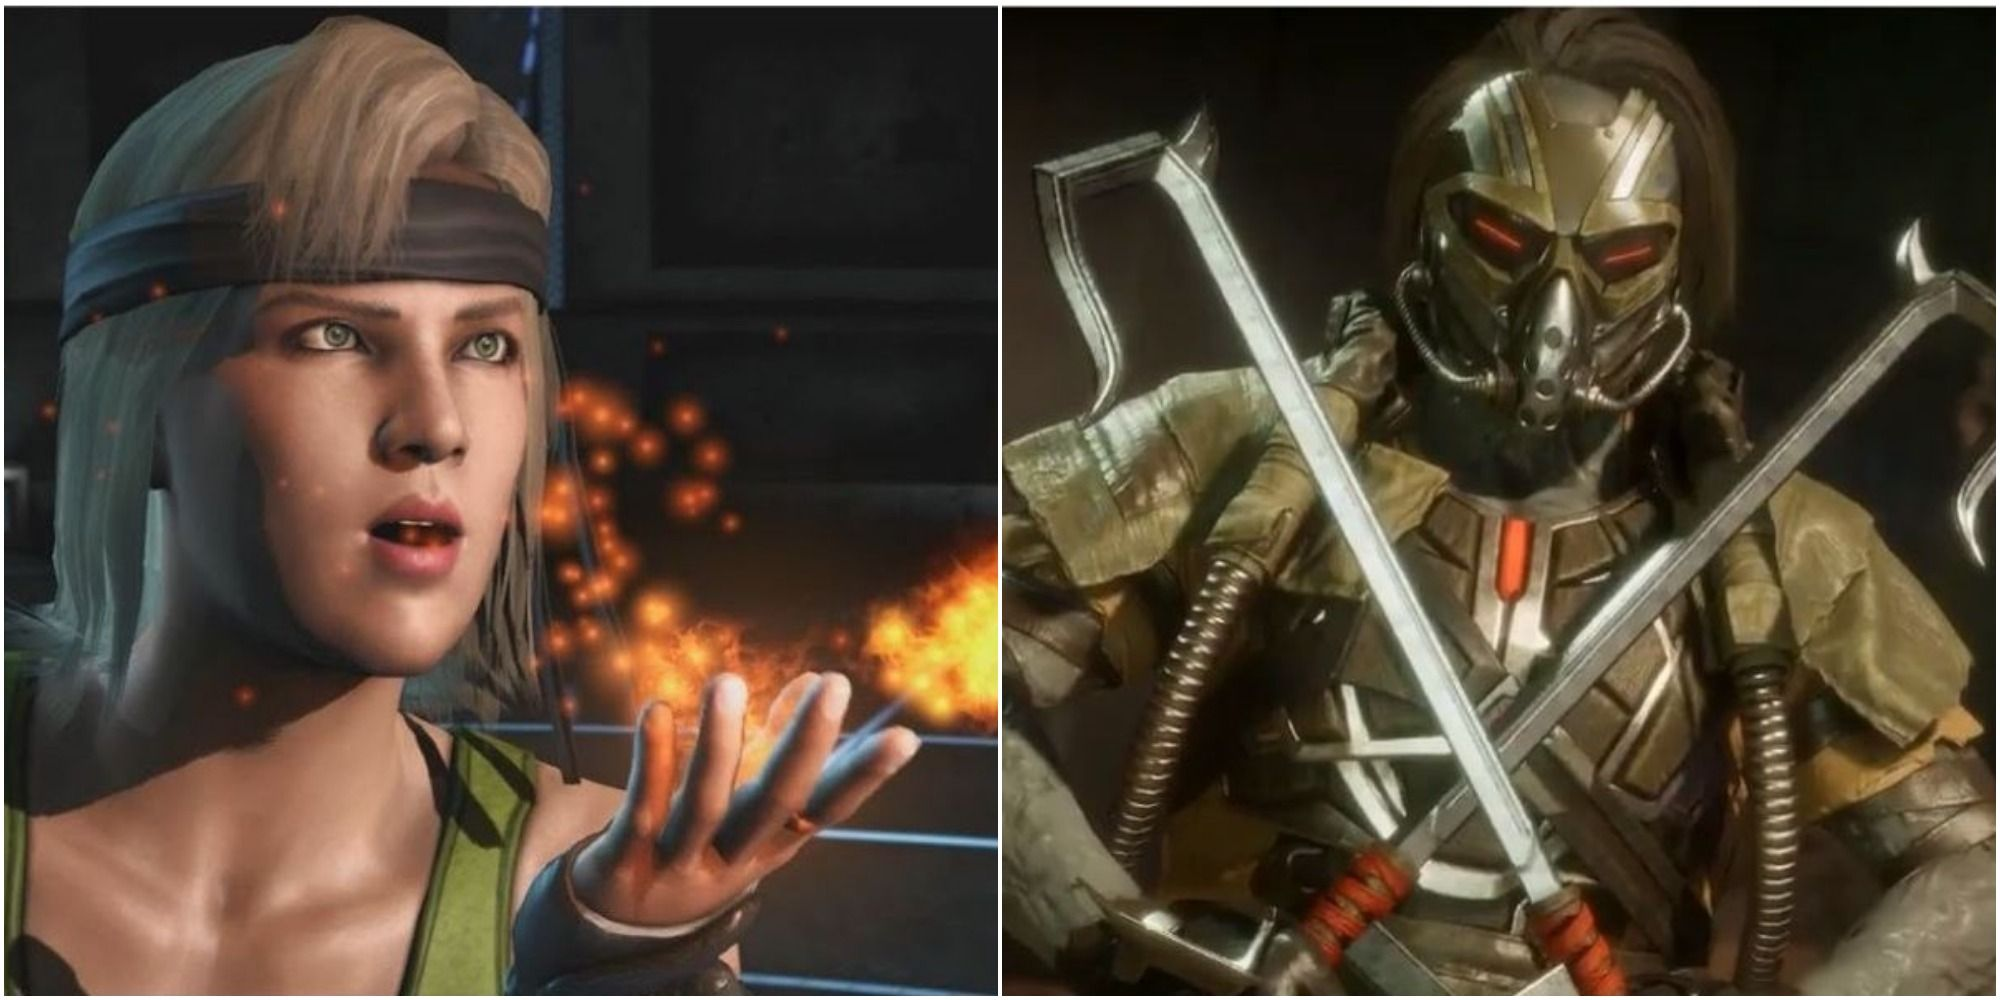 One Mortal Kombat 11 Developer Had To See A Therapist